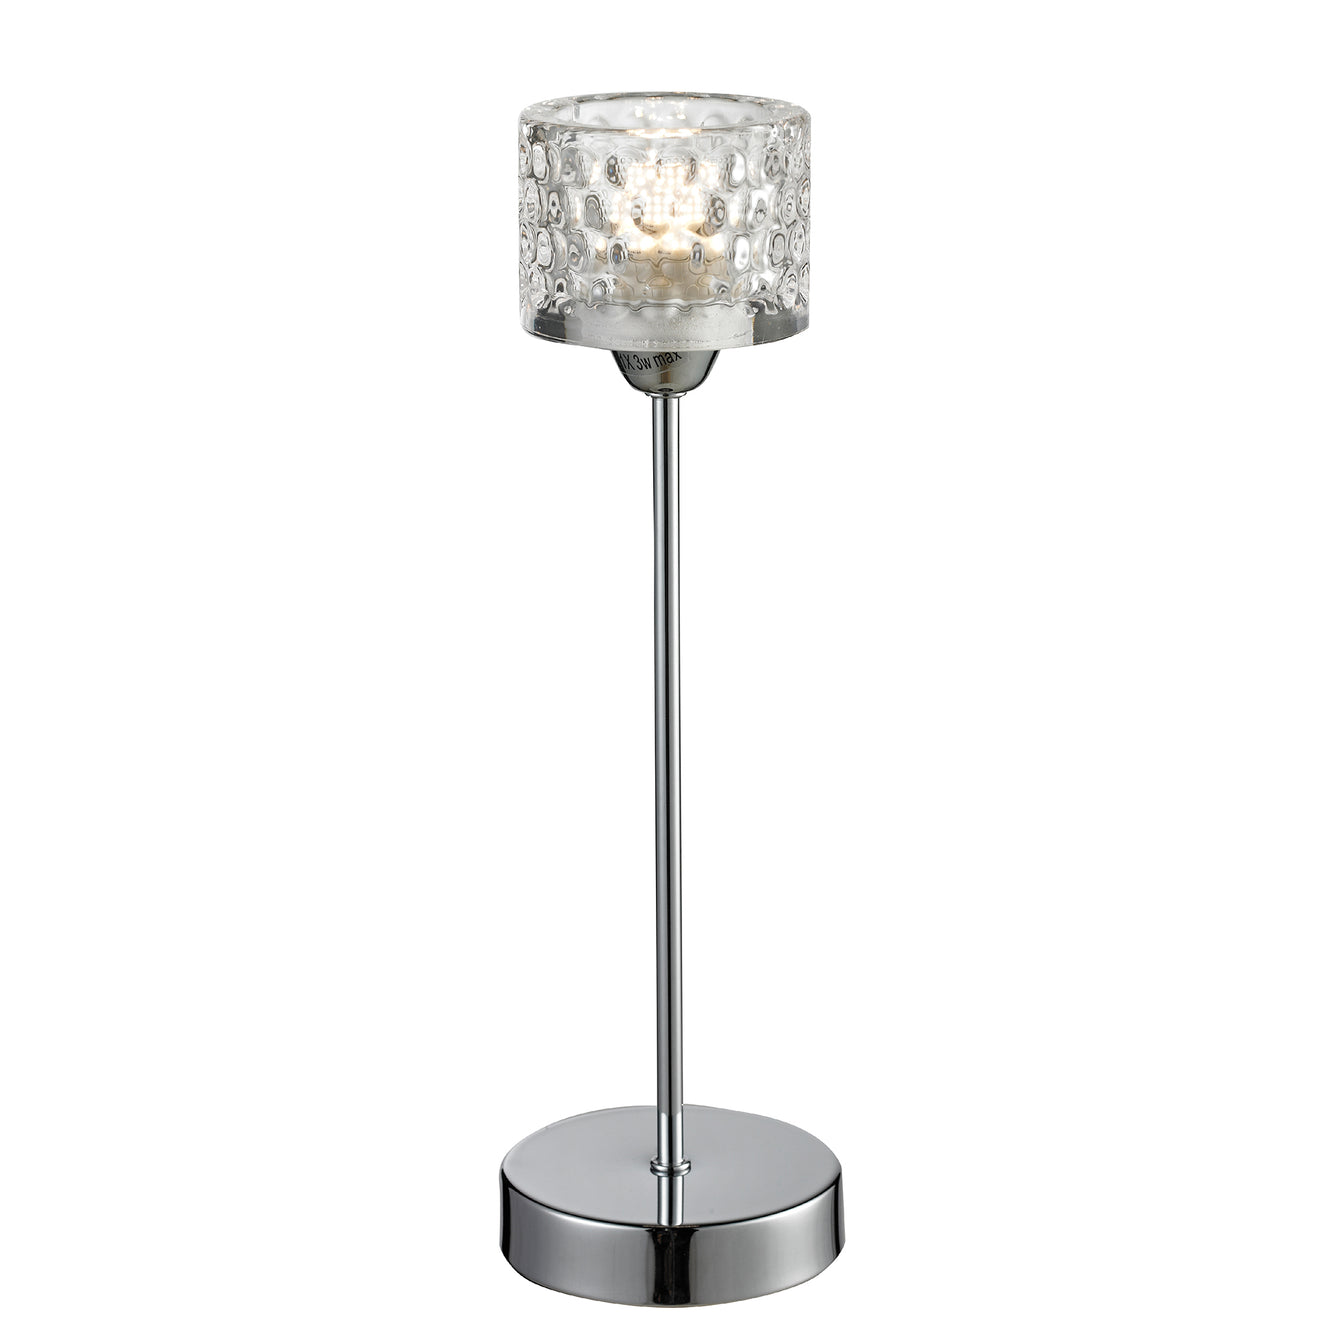 Finsbury Table Lamp LED Light - Buy It Better Default Title